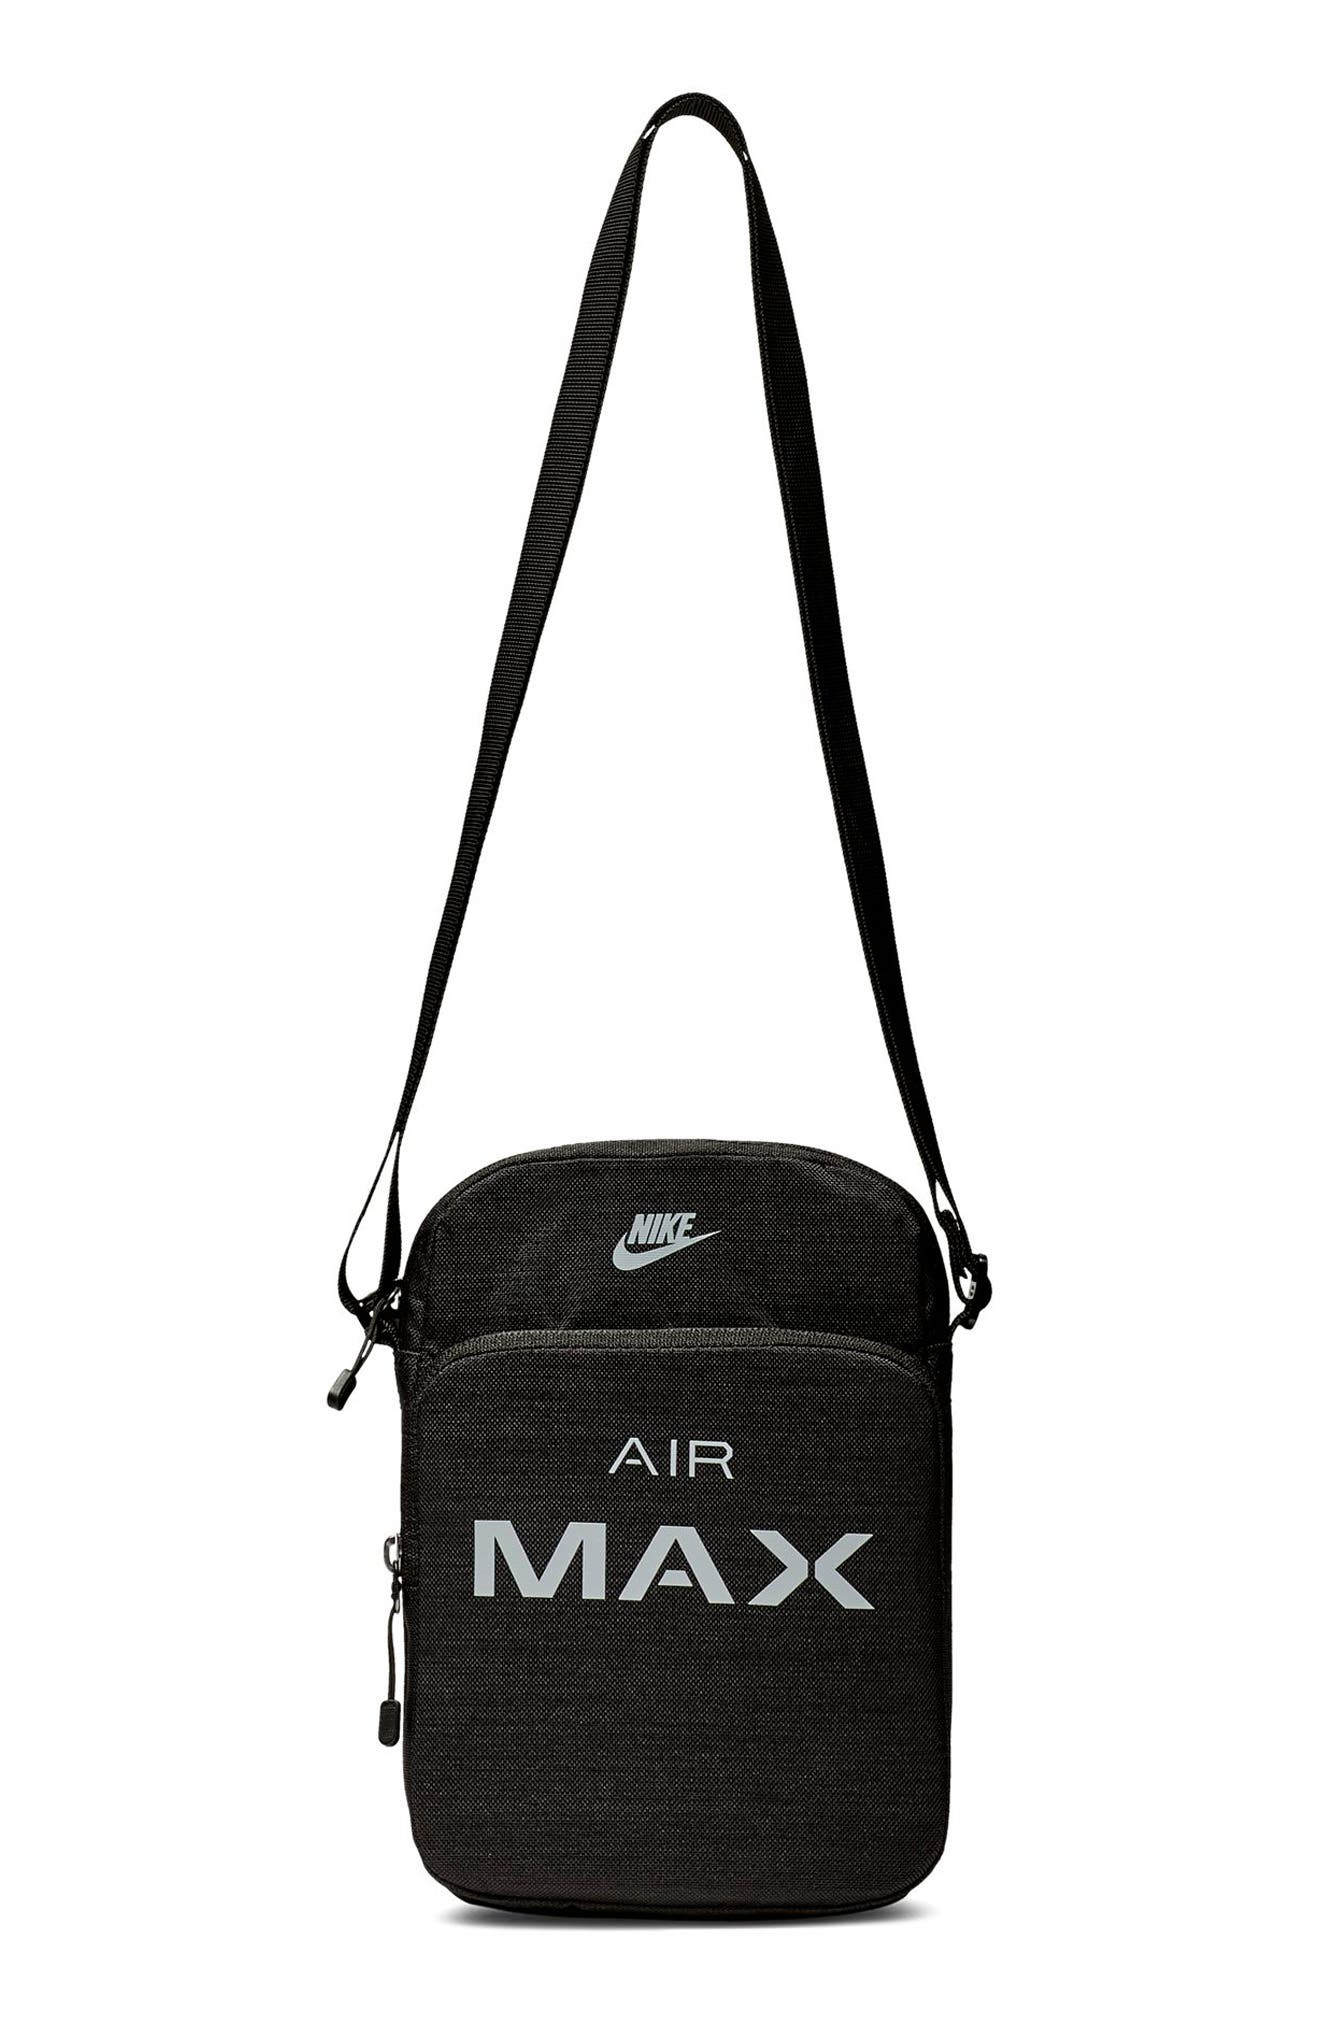 0695f949a5eb Nike Air Max Small Items Bag - Black